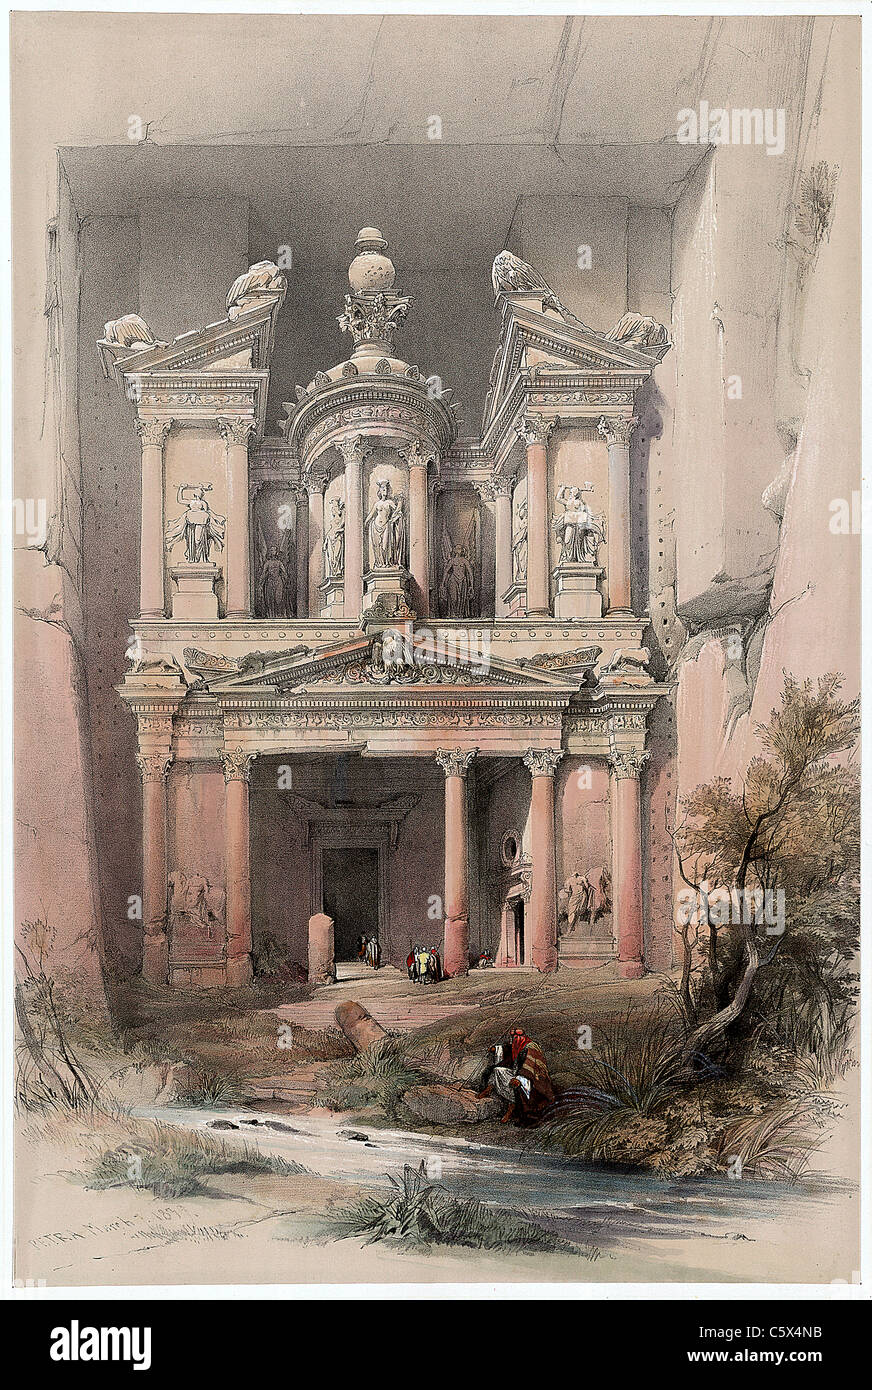 Petra March 7th 1839 - 'David Roberts and Louis Haghe Lithograph - Stock Image